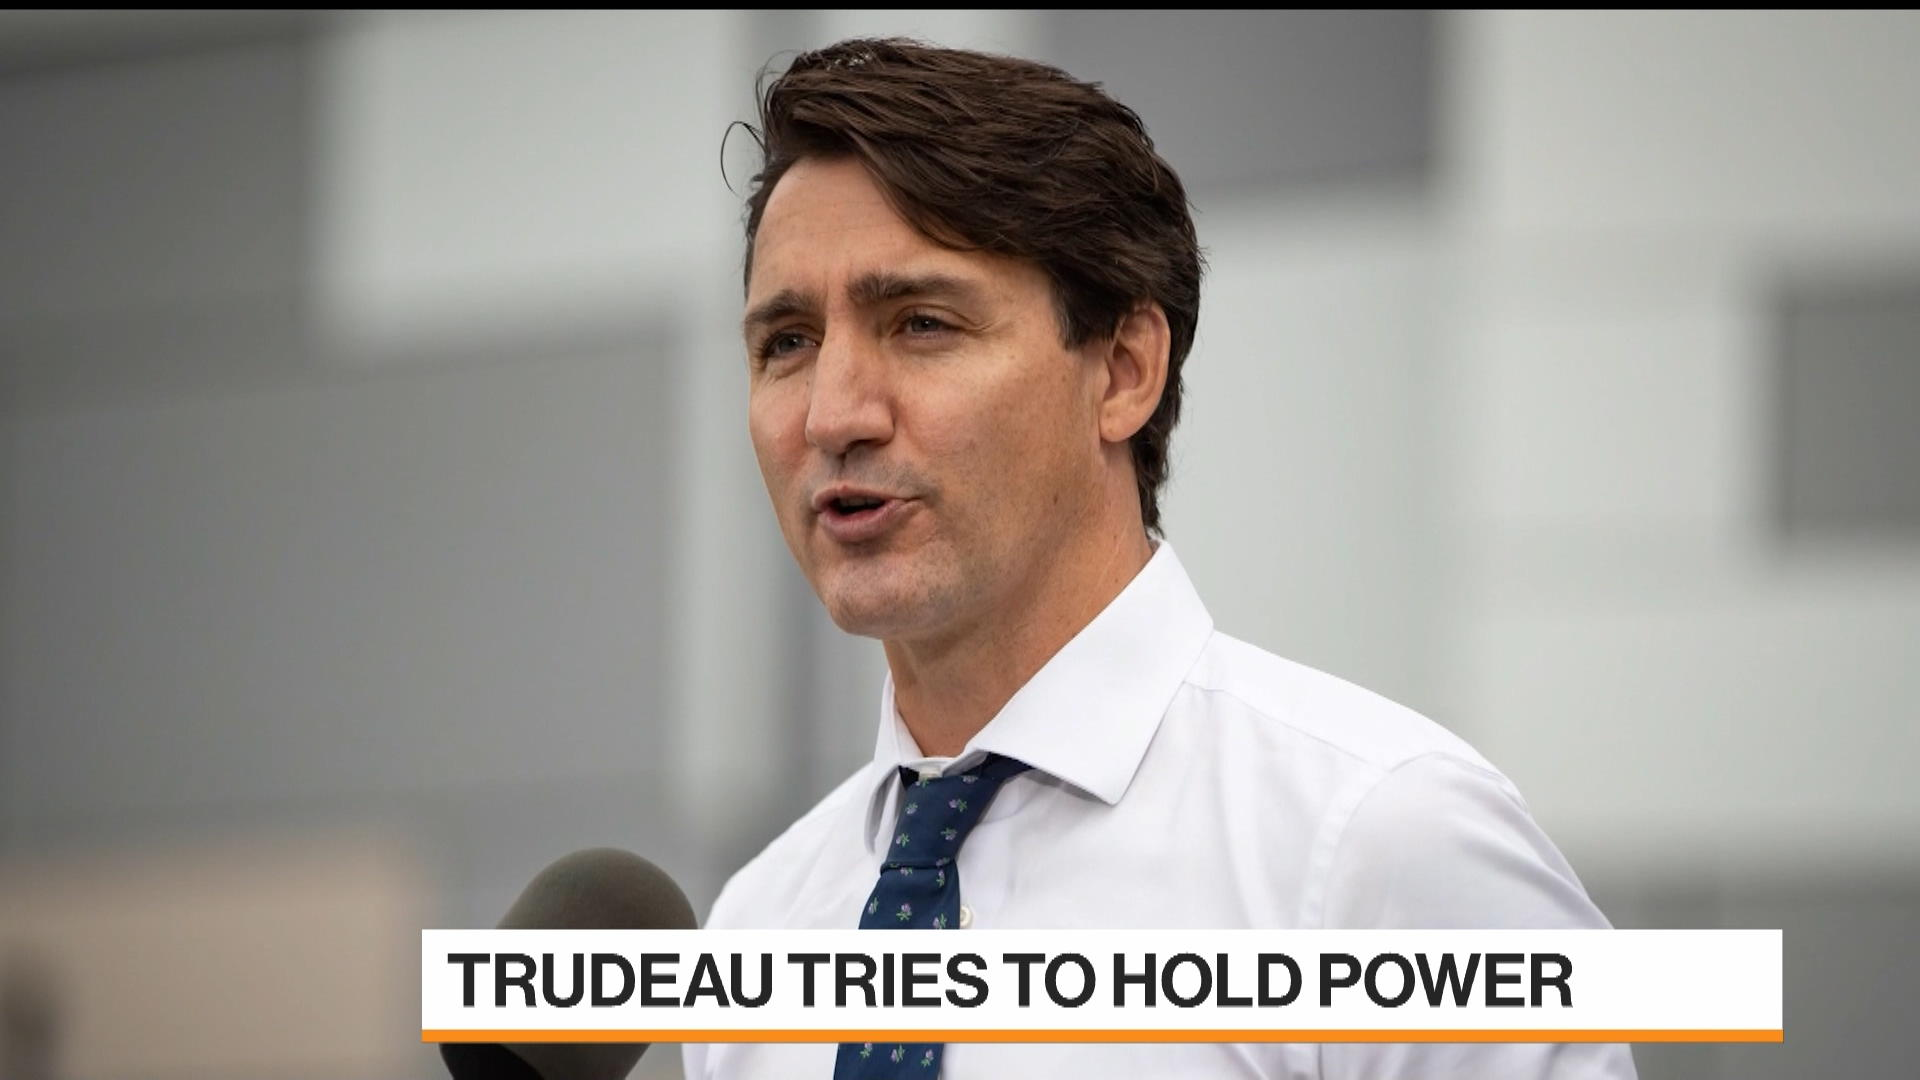 Trudeau Favored to Win Canadian Snap Election